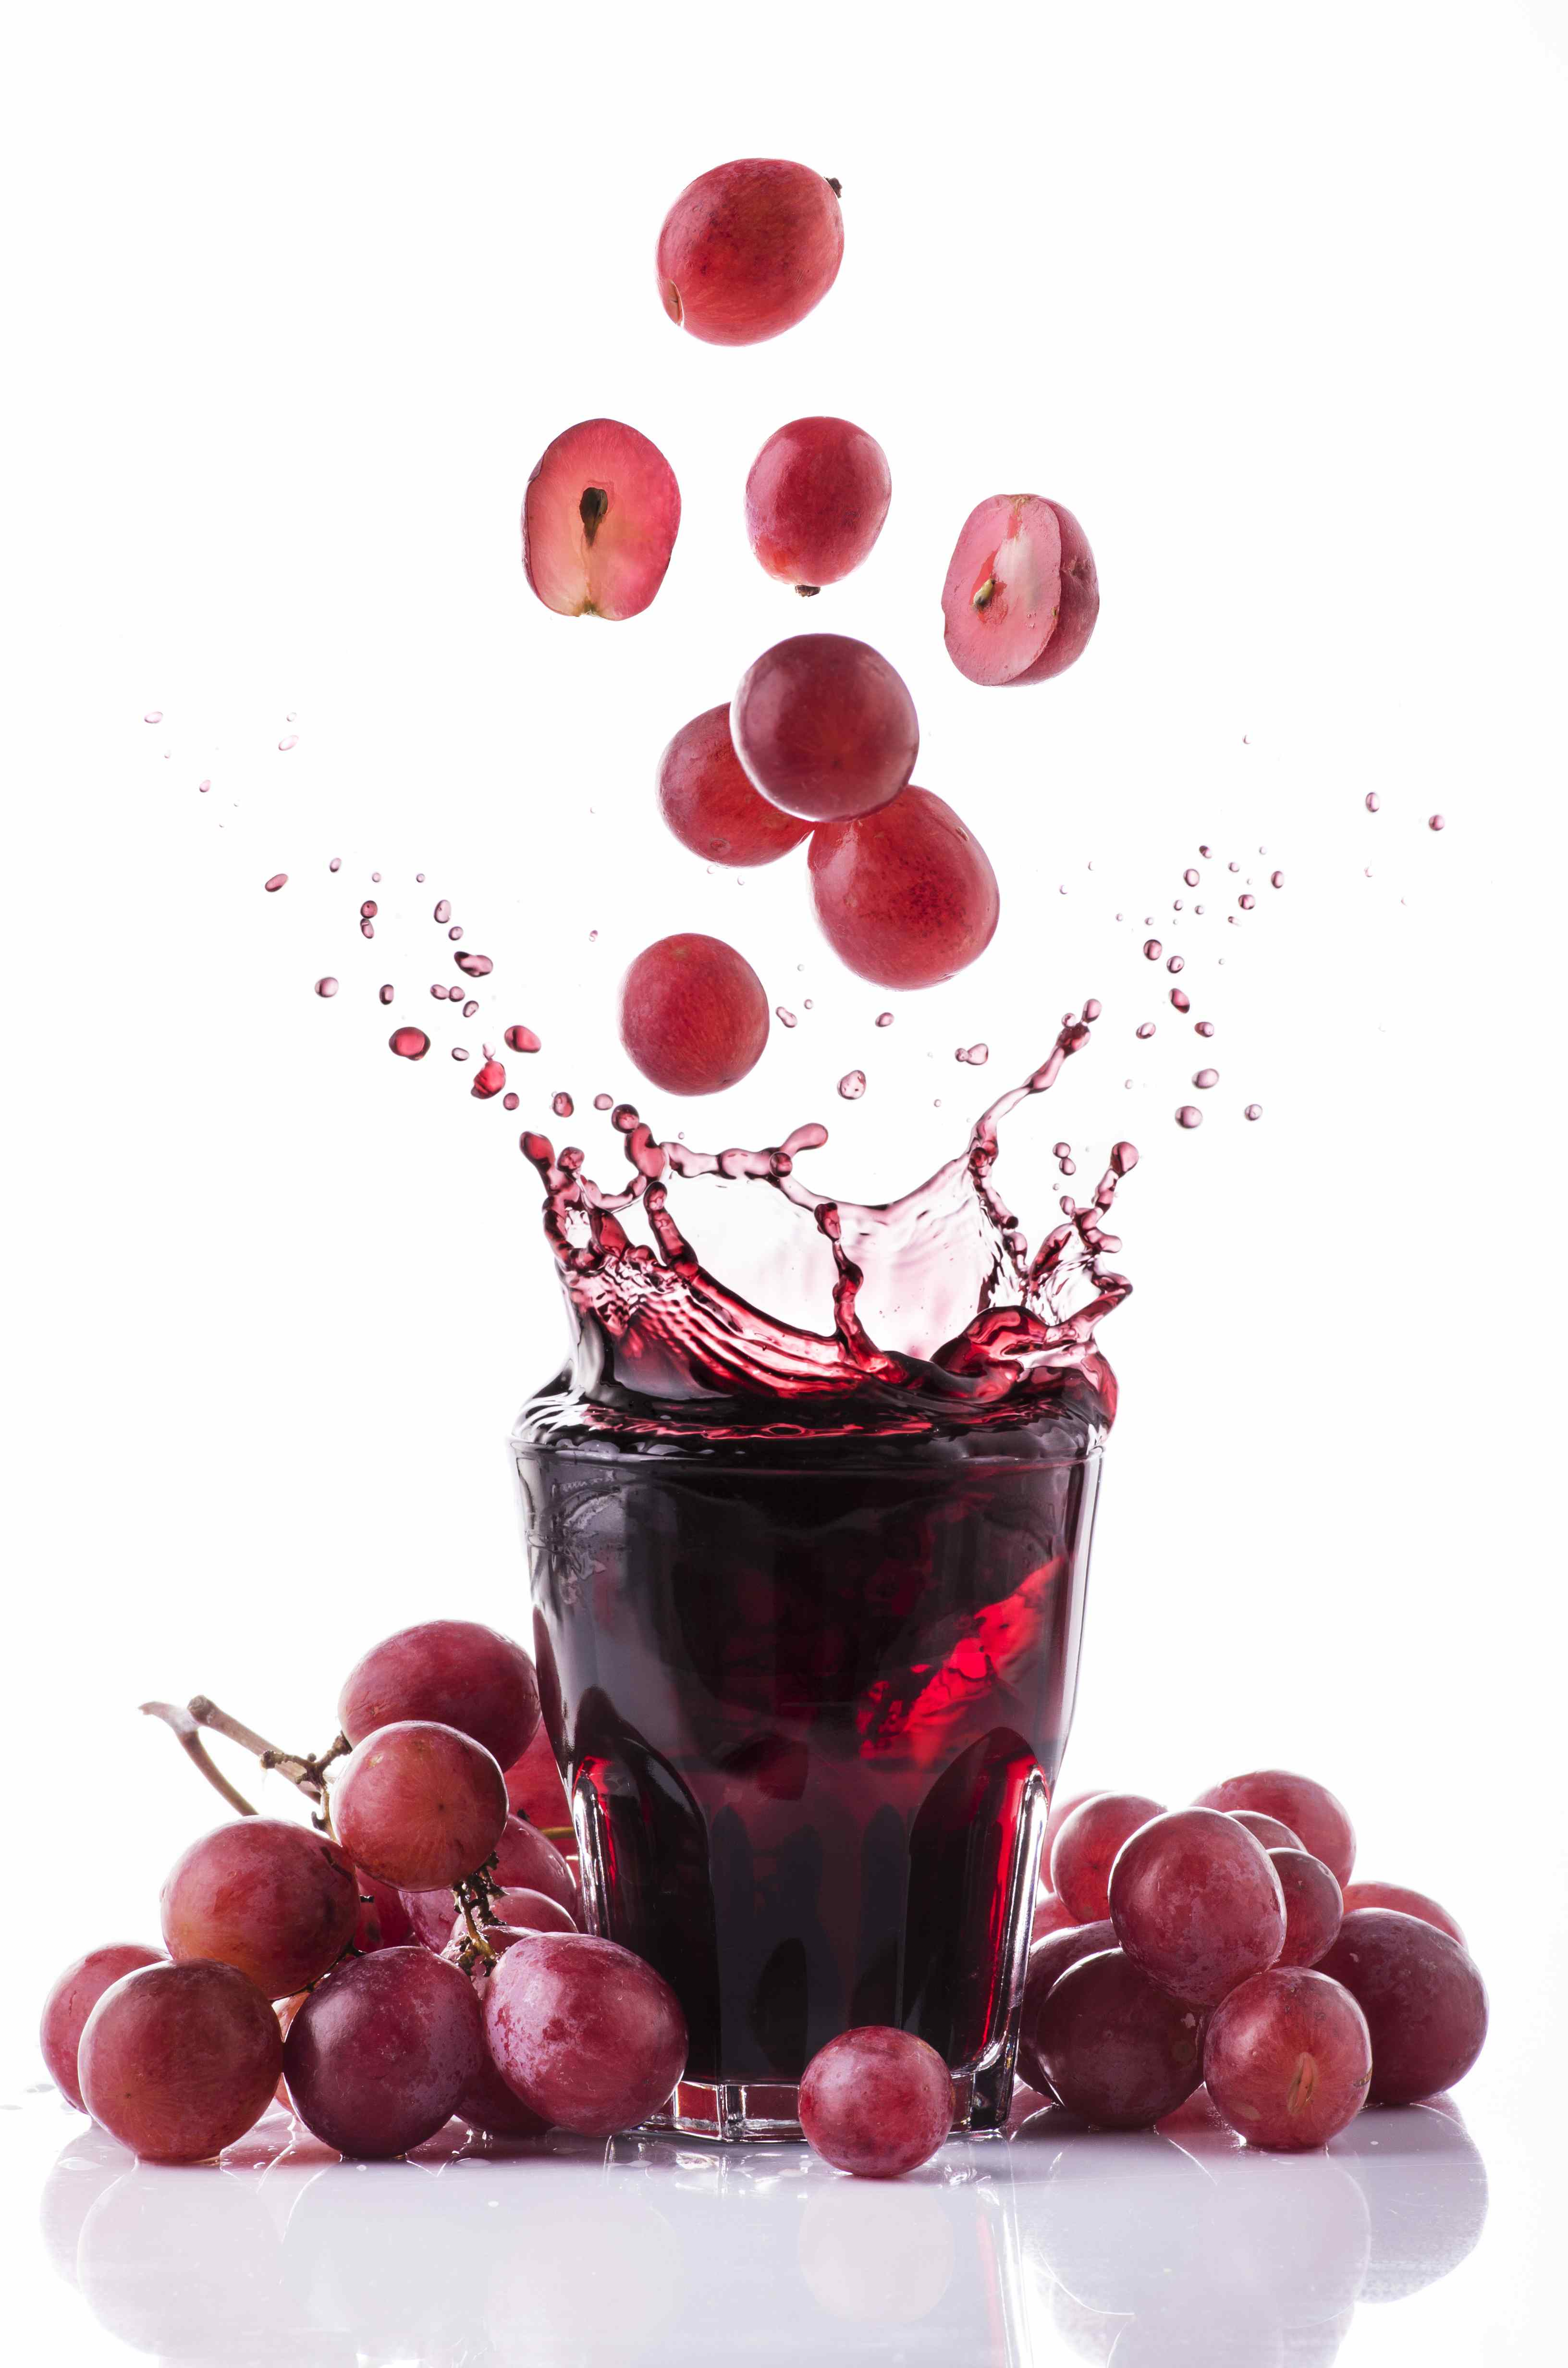 Grape Juice Wallpapers High Quality Download 3264x4928